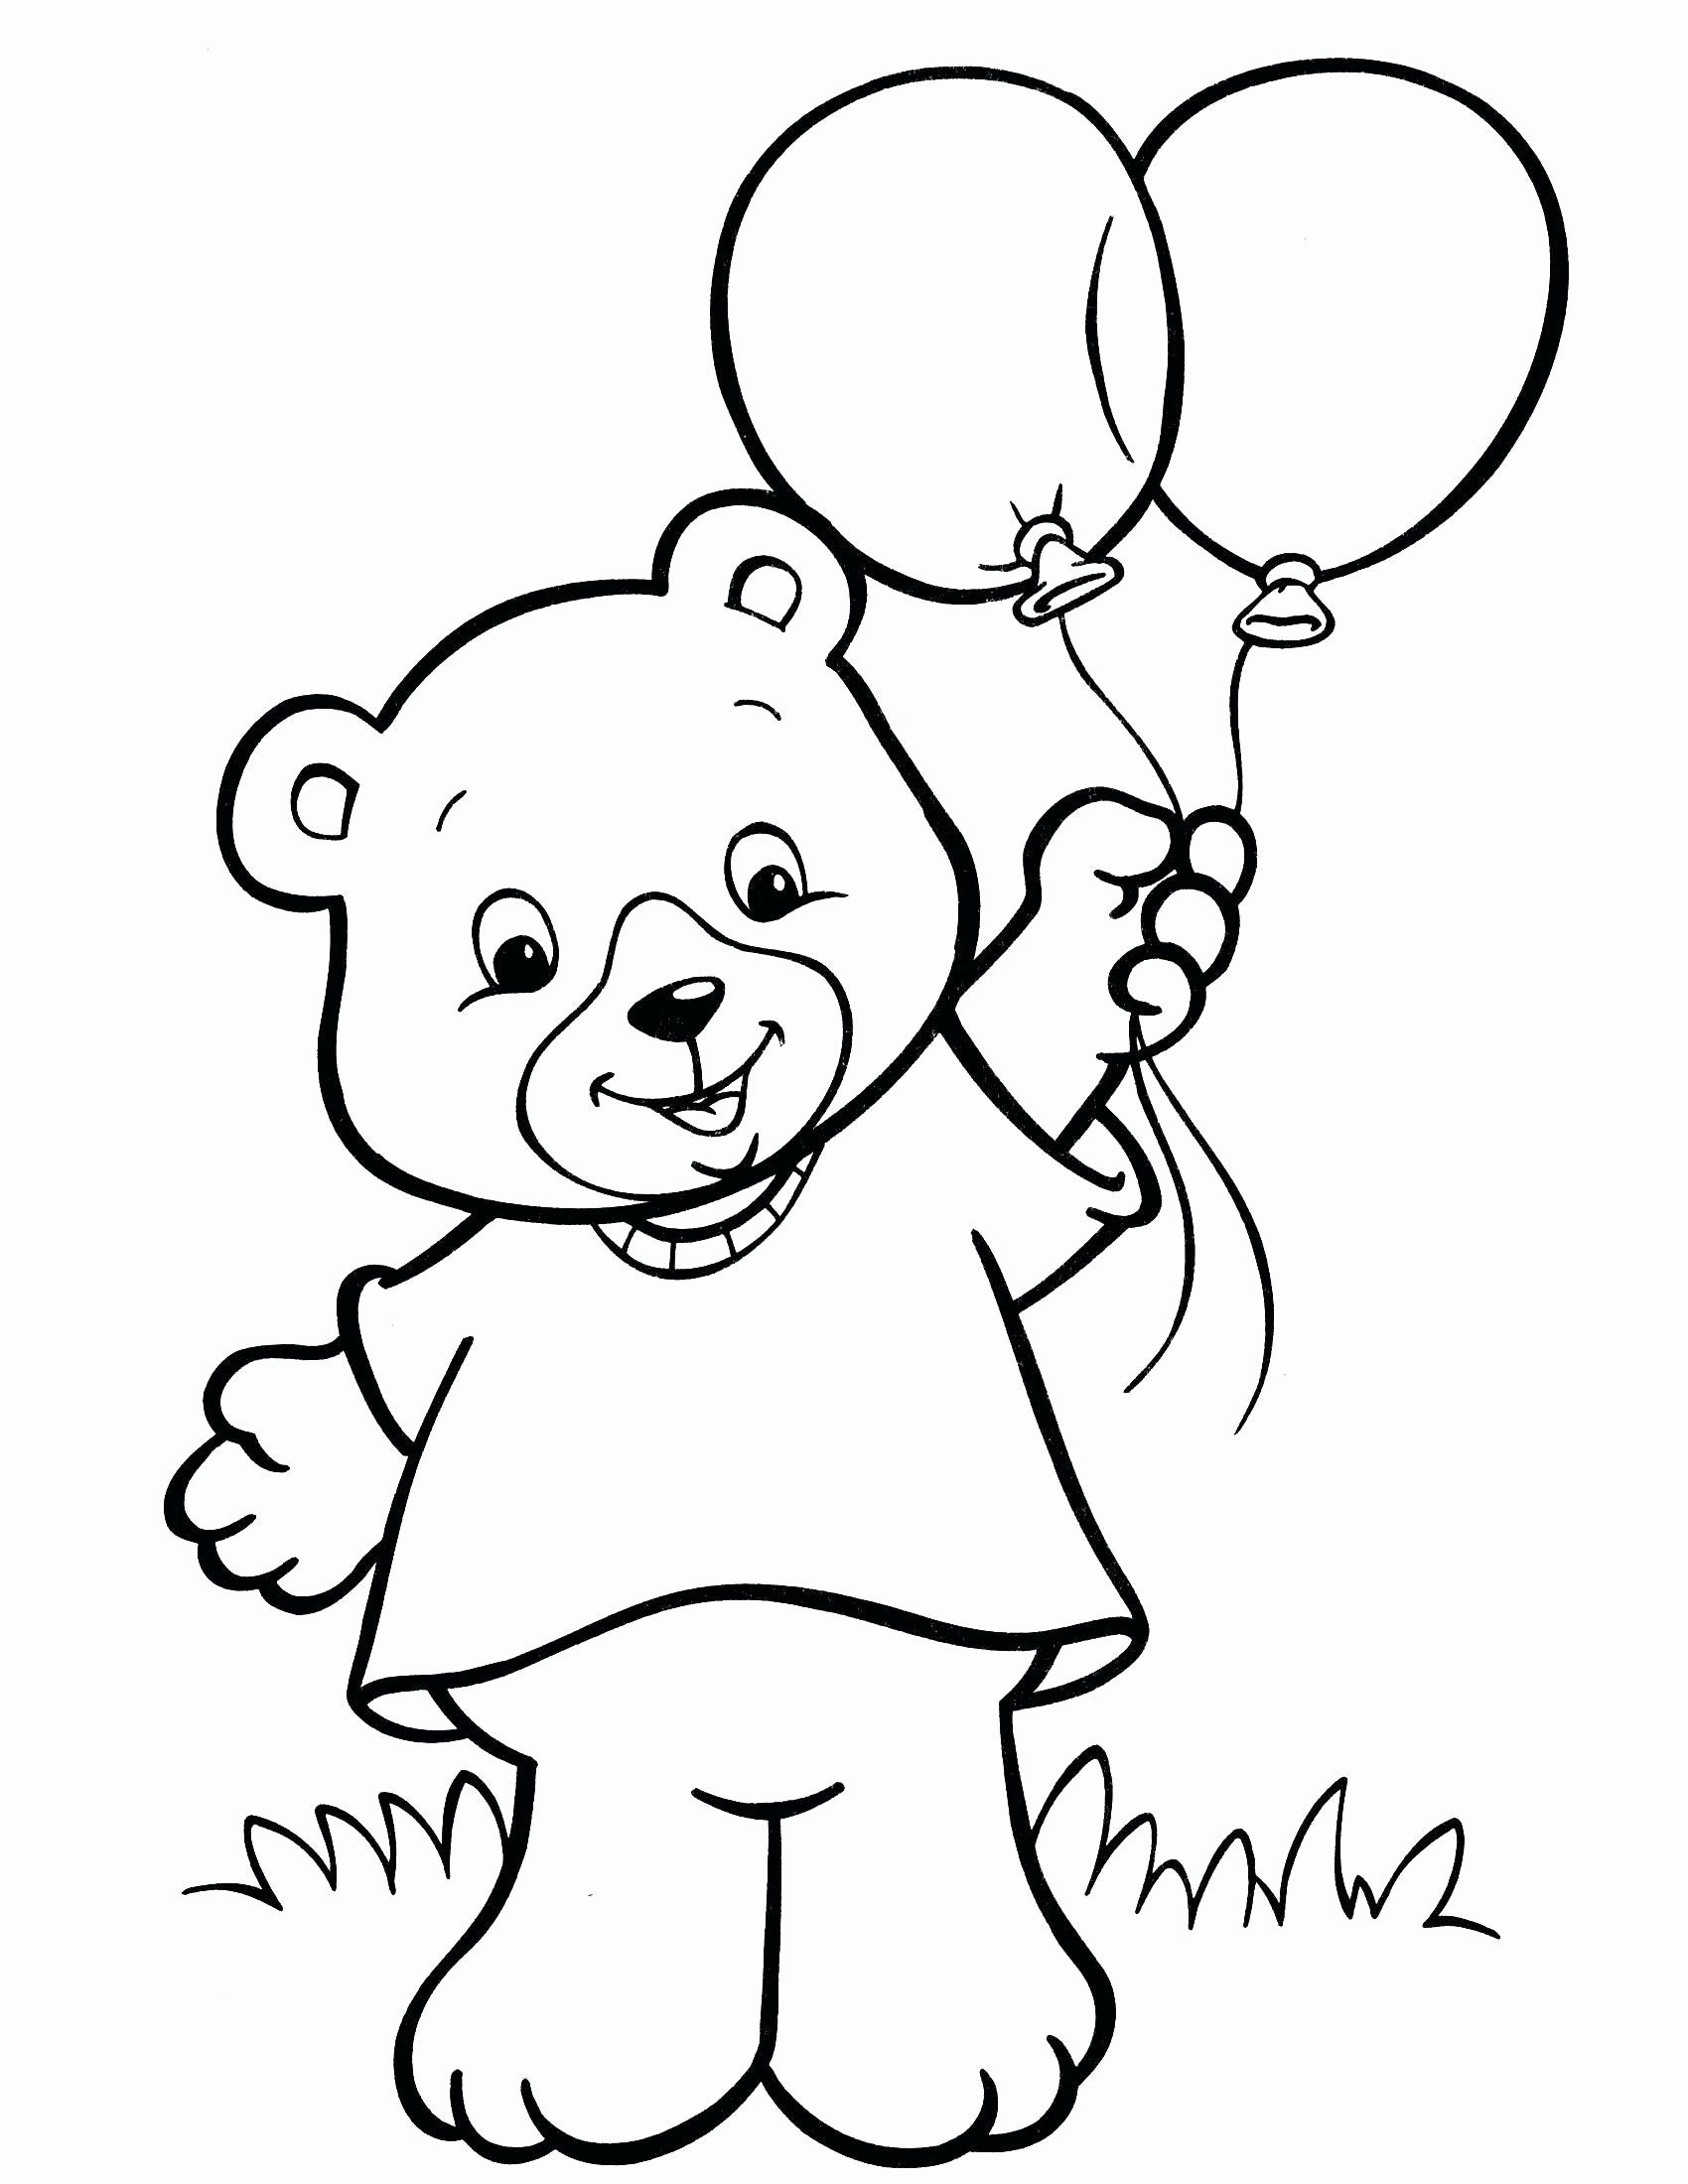 Coloring Activities For 8 Year Olds Lovely Coloring Ideas Marvelous Free Coloring Pages For 2 Summer Coloring Pages Crayola Coloring Pages Bear Coloring Pages